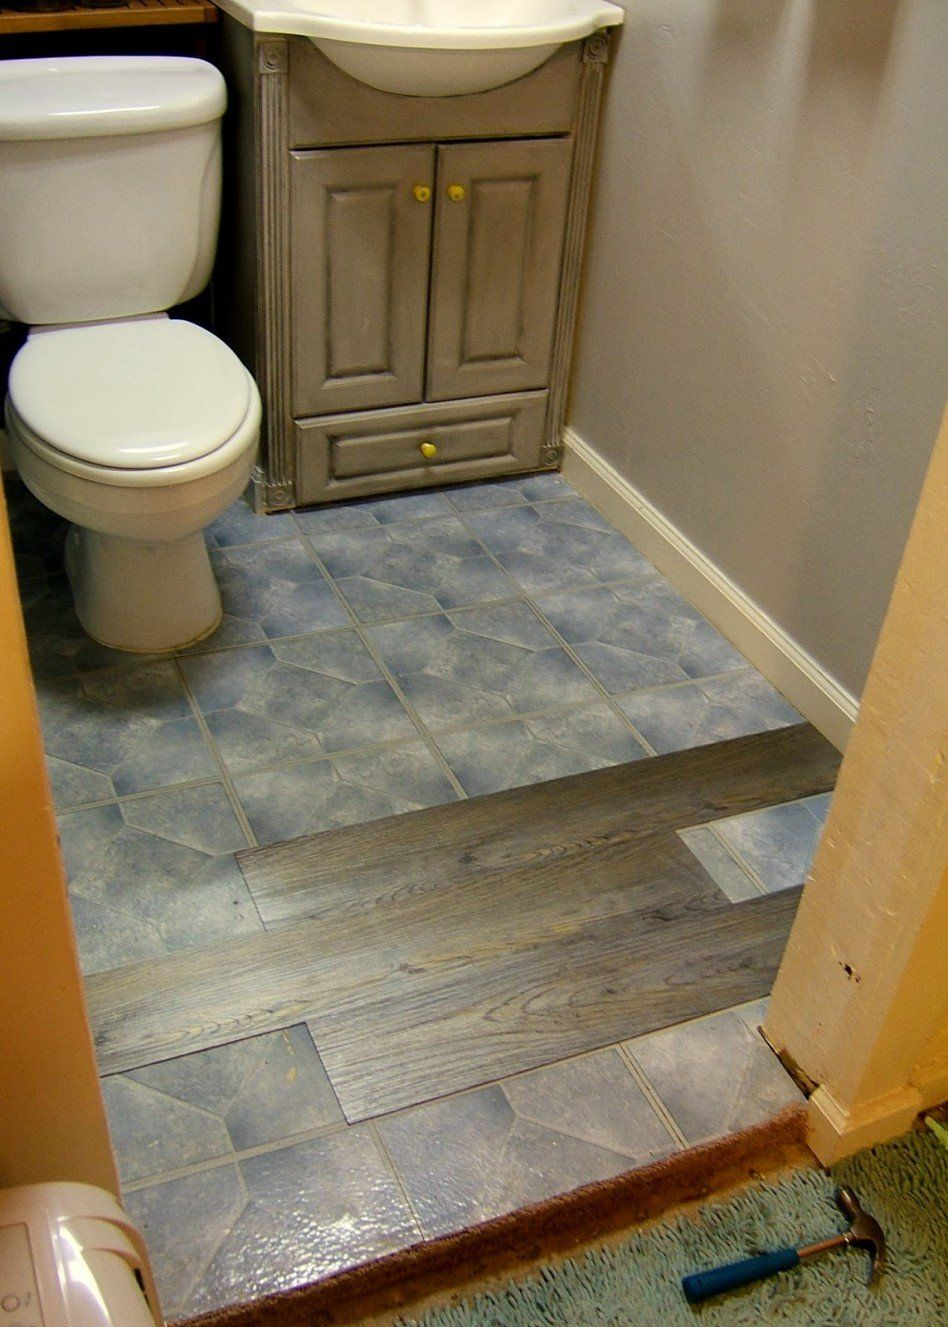 Interior Installing Floating Vinyl Plank Flooring Over Ceramic Wall Tiles For Small And Narrow Bathroom Spaces With Old Vintage Oak Wood Vanity Ideas